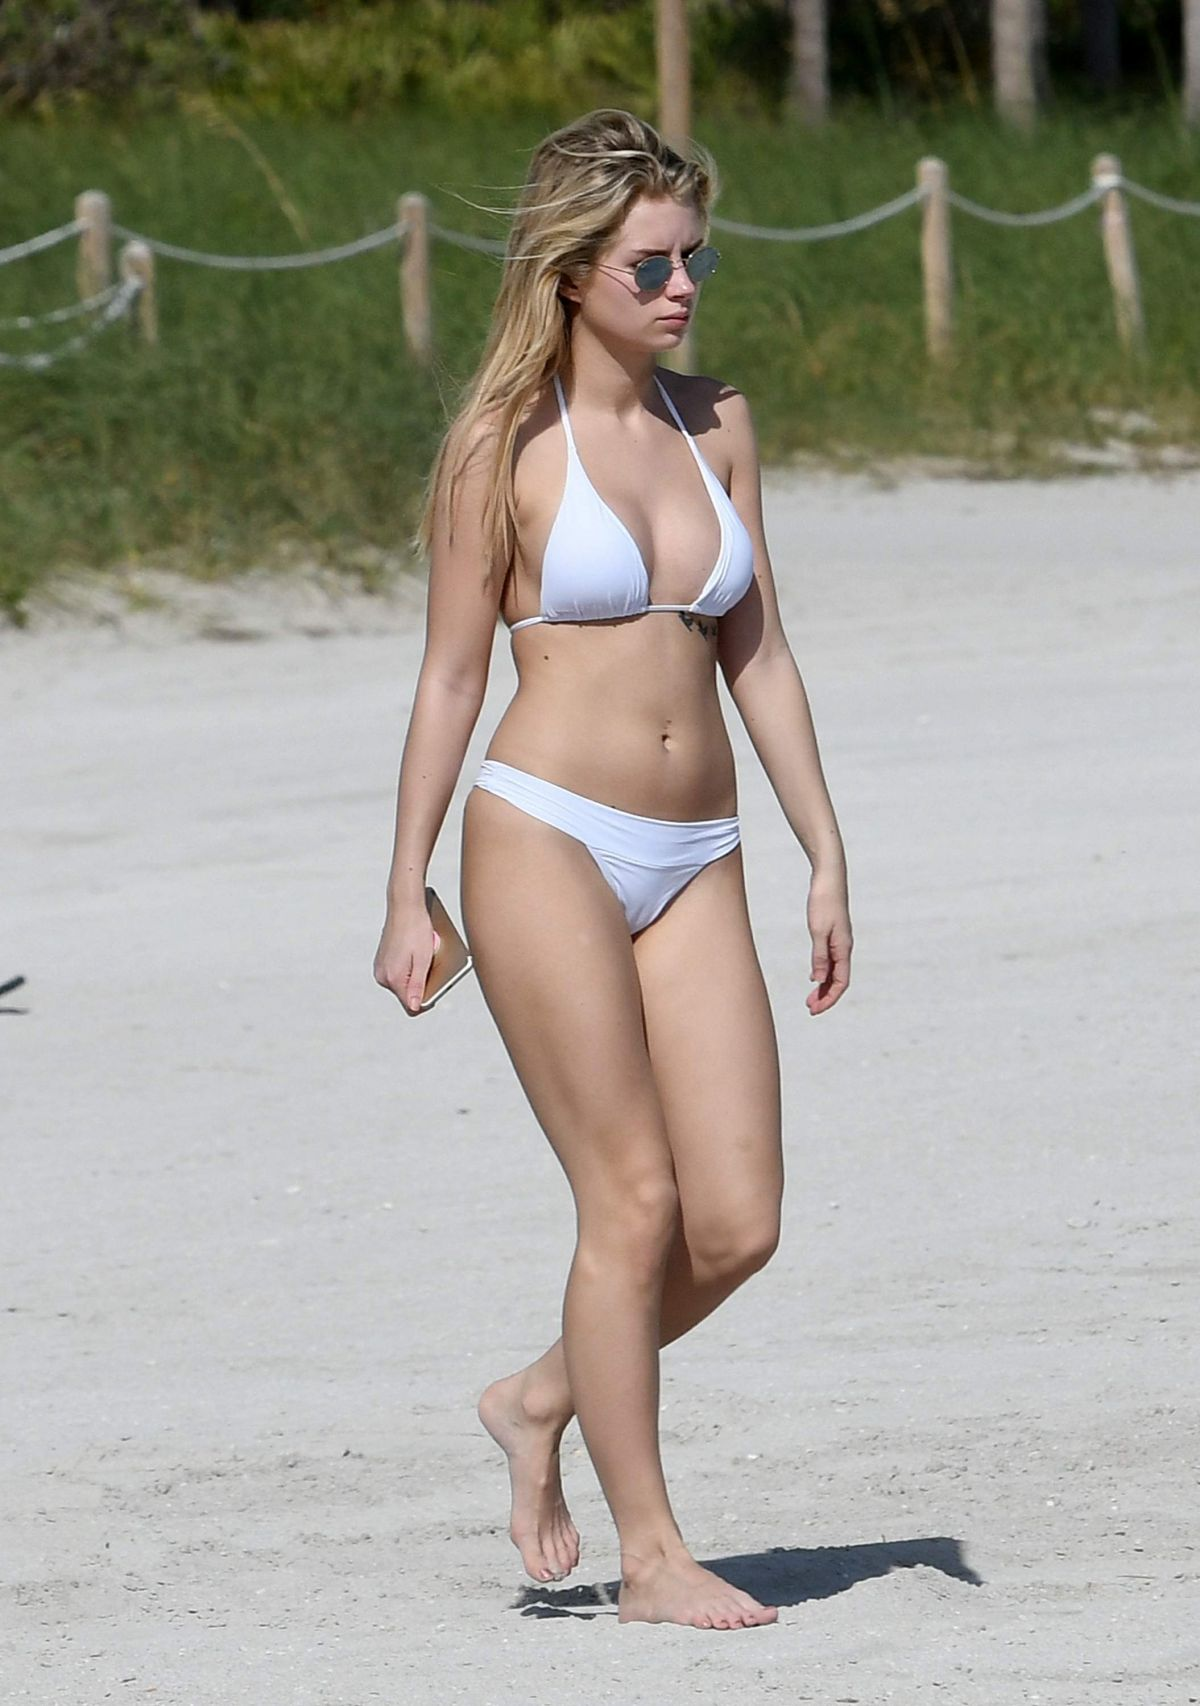 Lottie Moss in White Bikini on Holiday in Miami Pic 1 of 35